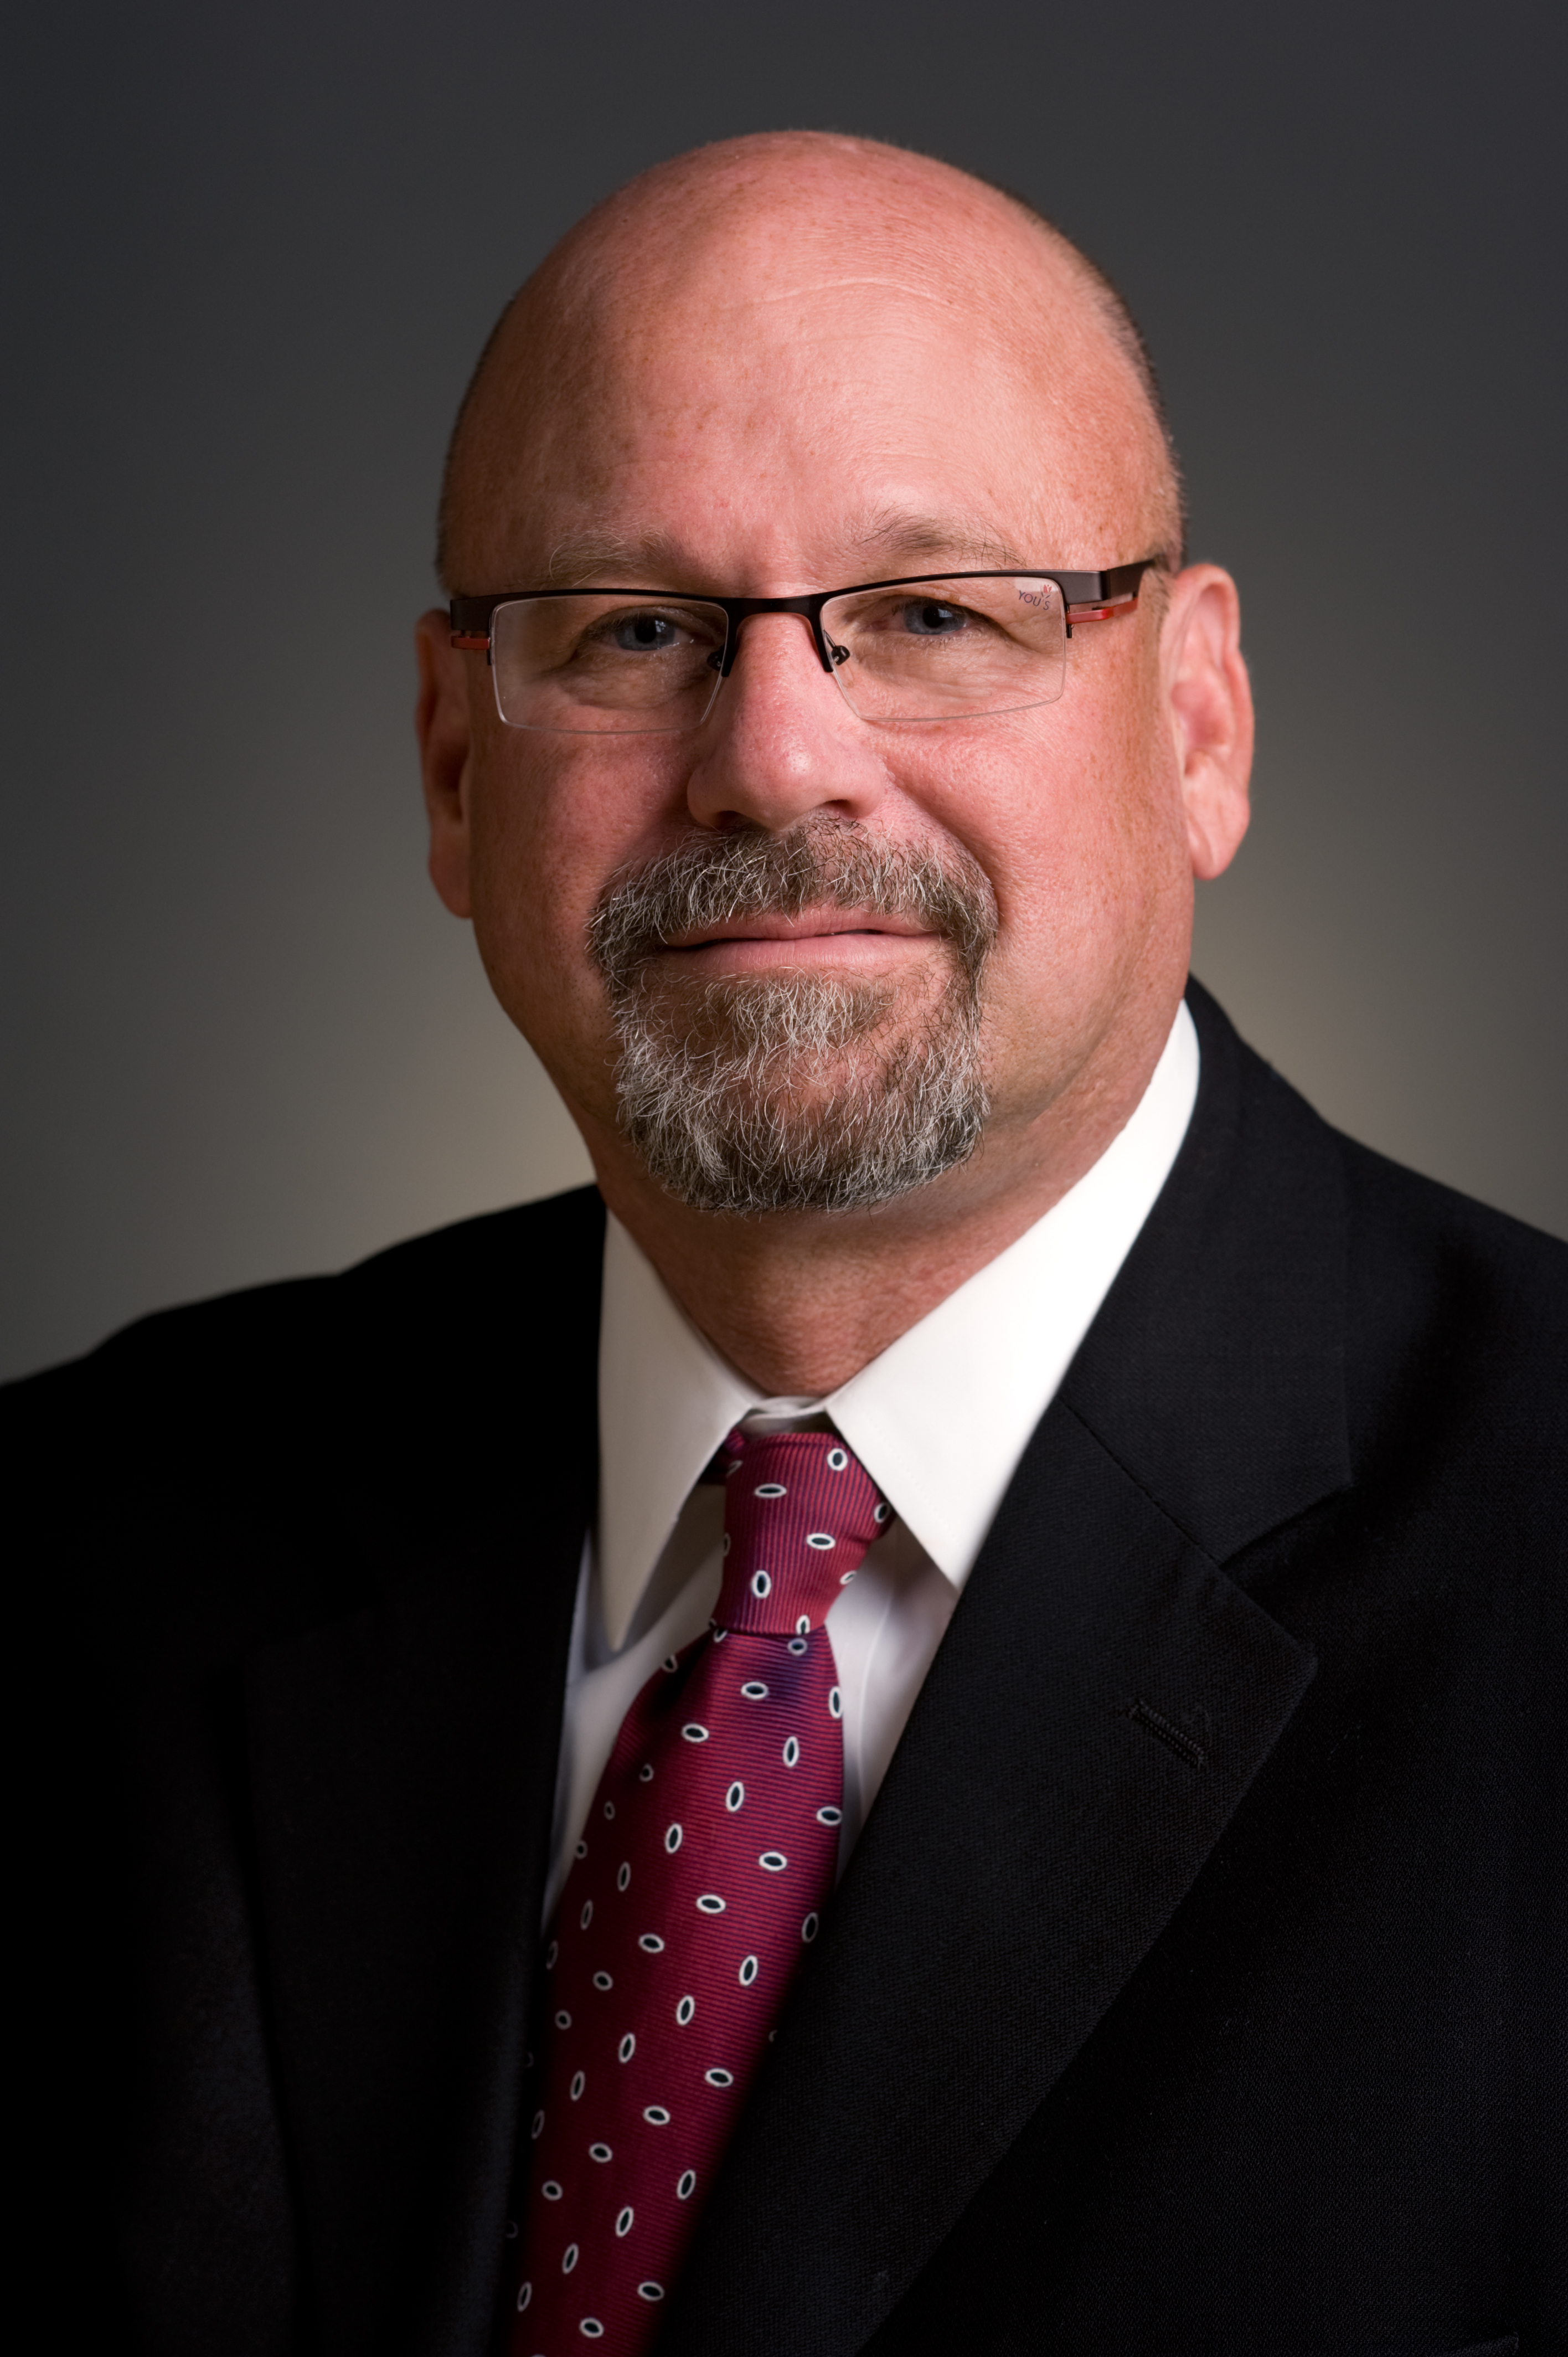 Marvin Labrie, CEO of Physicians Medical Group of Santa Cruz (Photo: Business Wire)